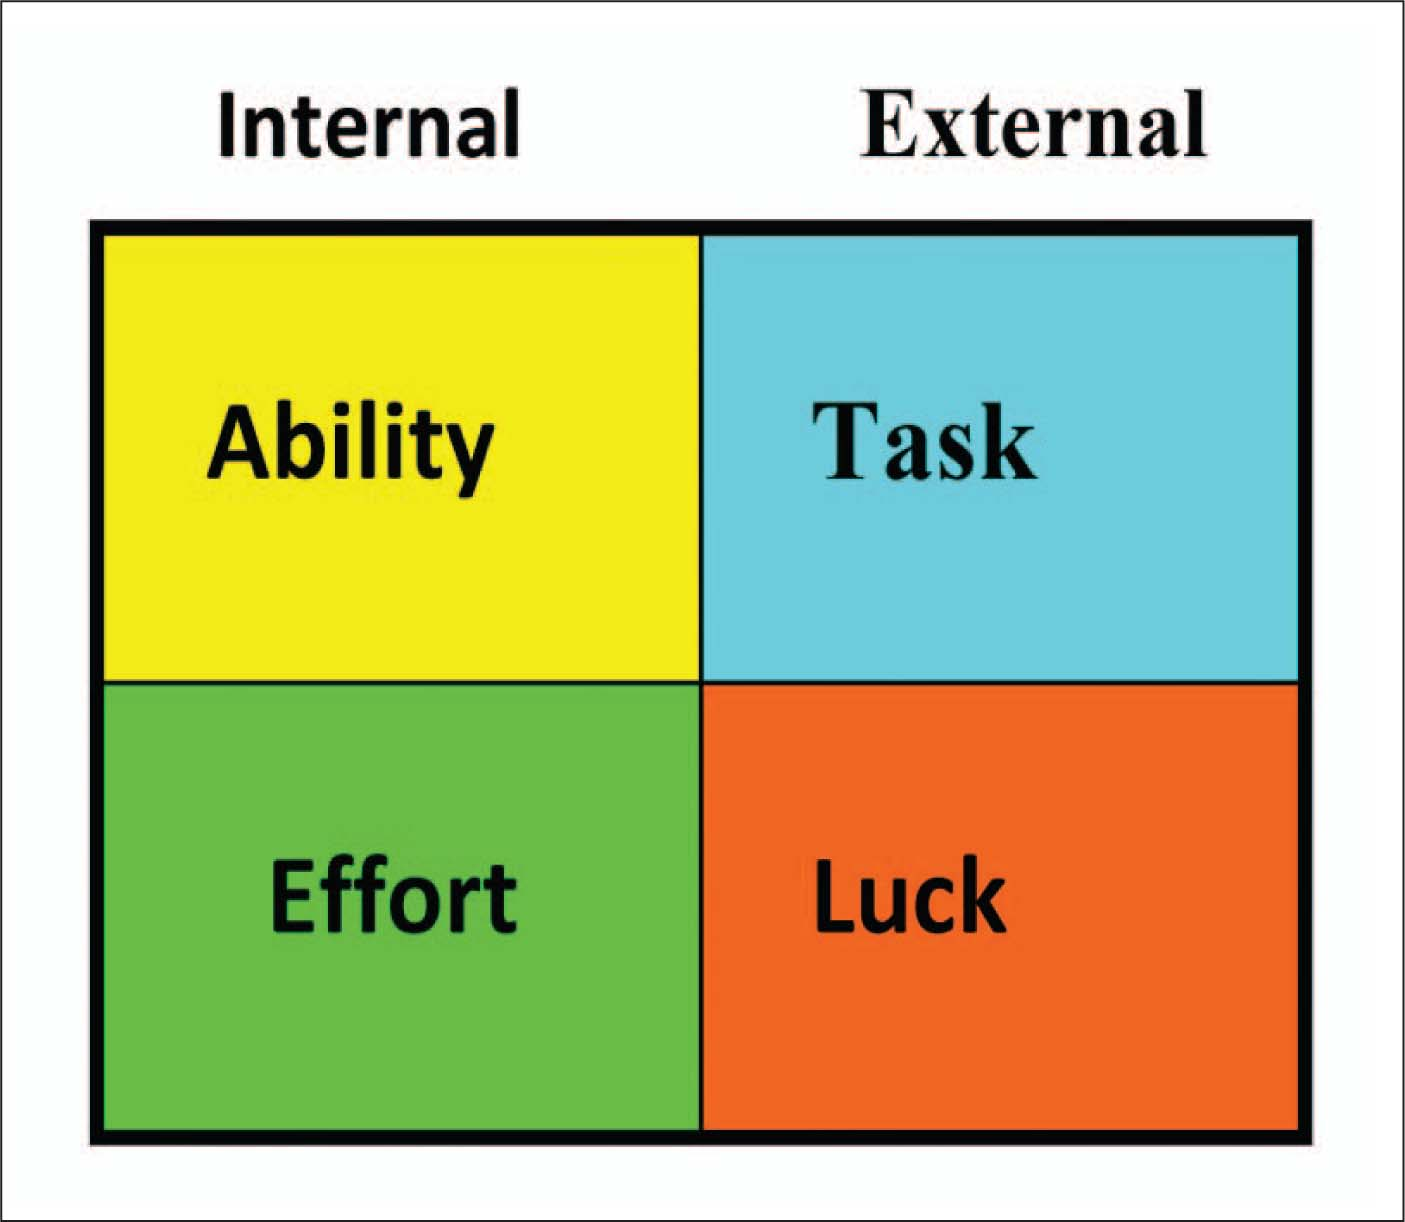 The Attribution Theory Emphasizes the Need to Focus on Rehabilitative Tasks, Doing Them to the Best of One's Ability, Performed at 100% Effort.